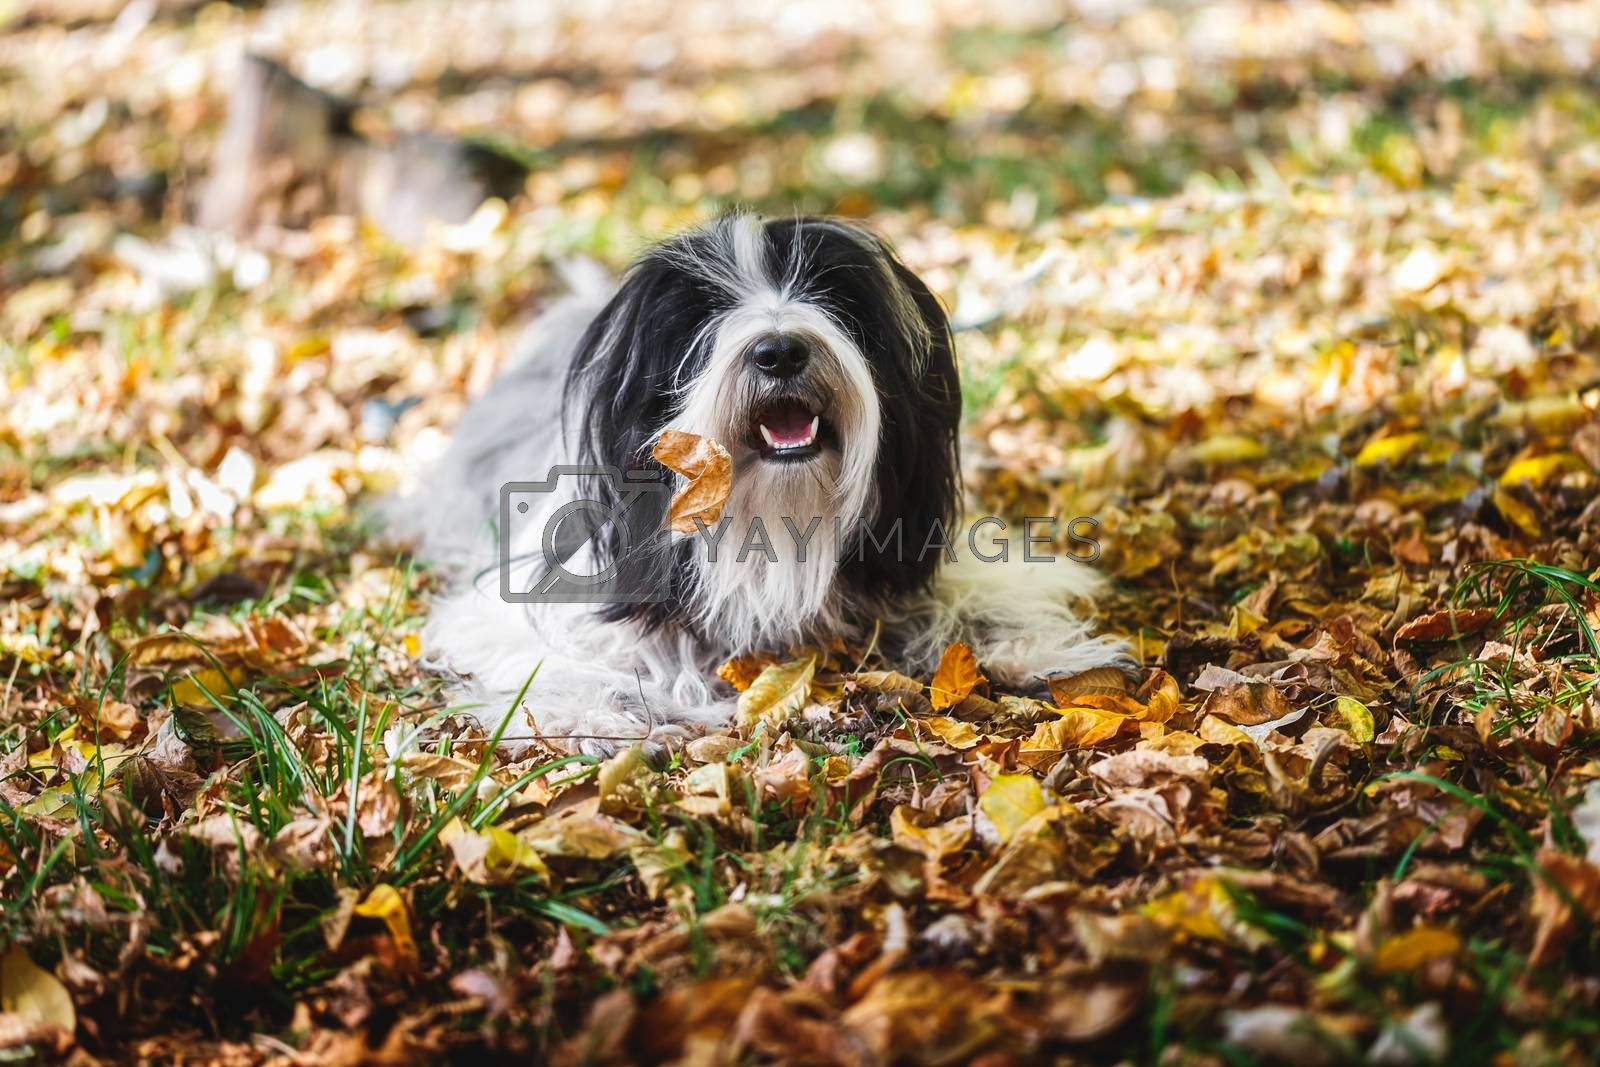 Tibetan terrier dog playing in a bed of leaves and  looking at the camera.Autumn season.  Selective focus, copy space